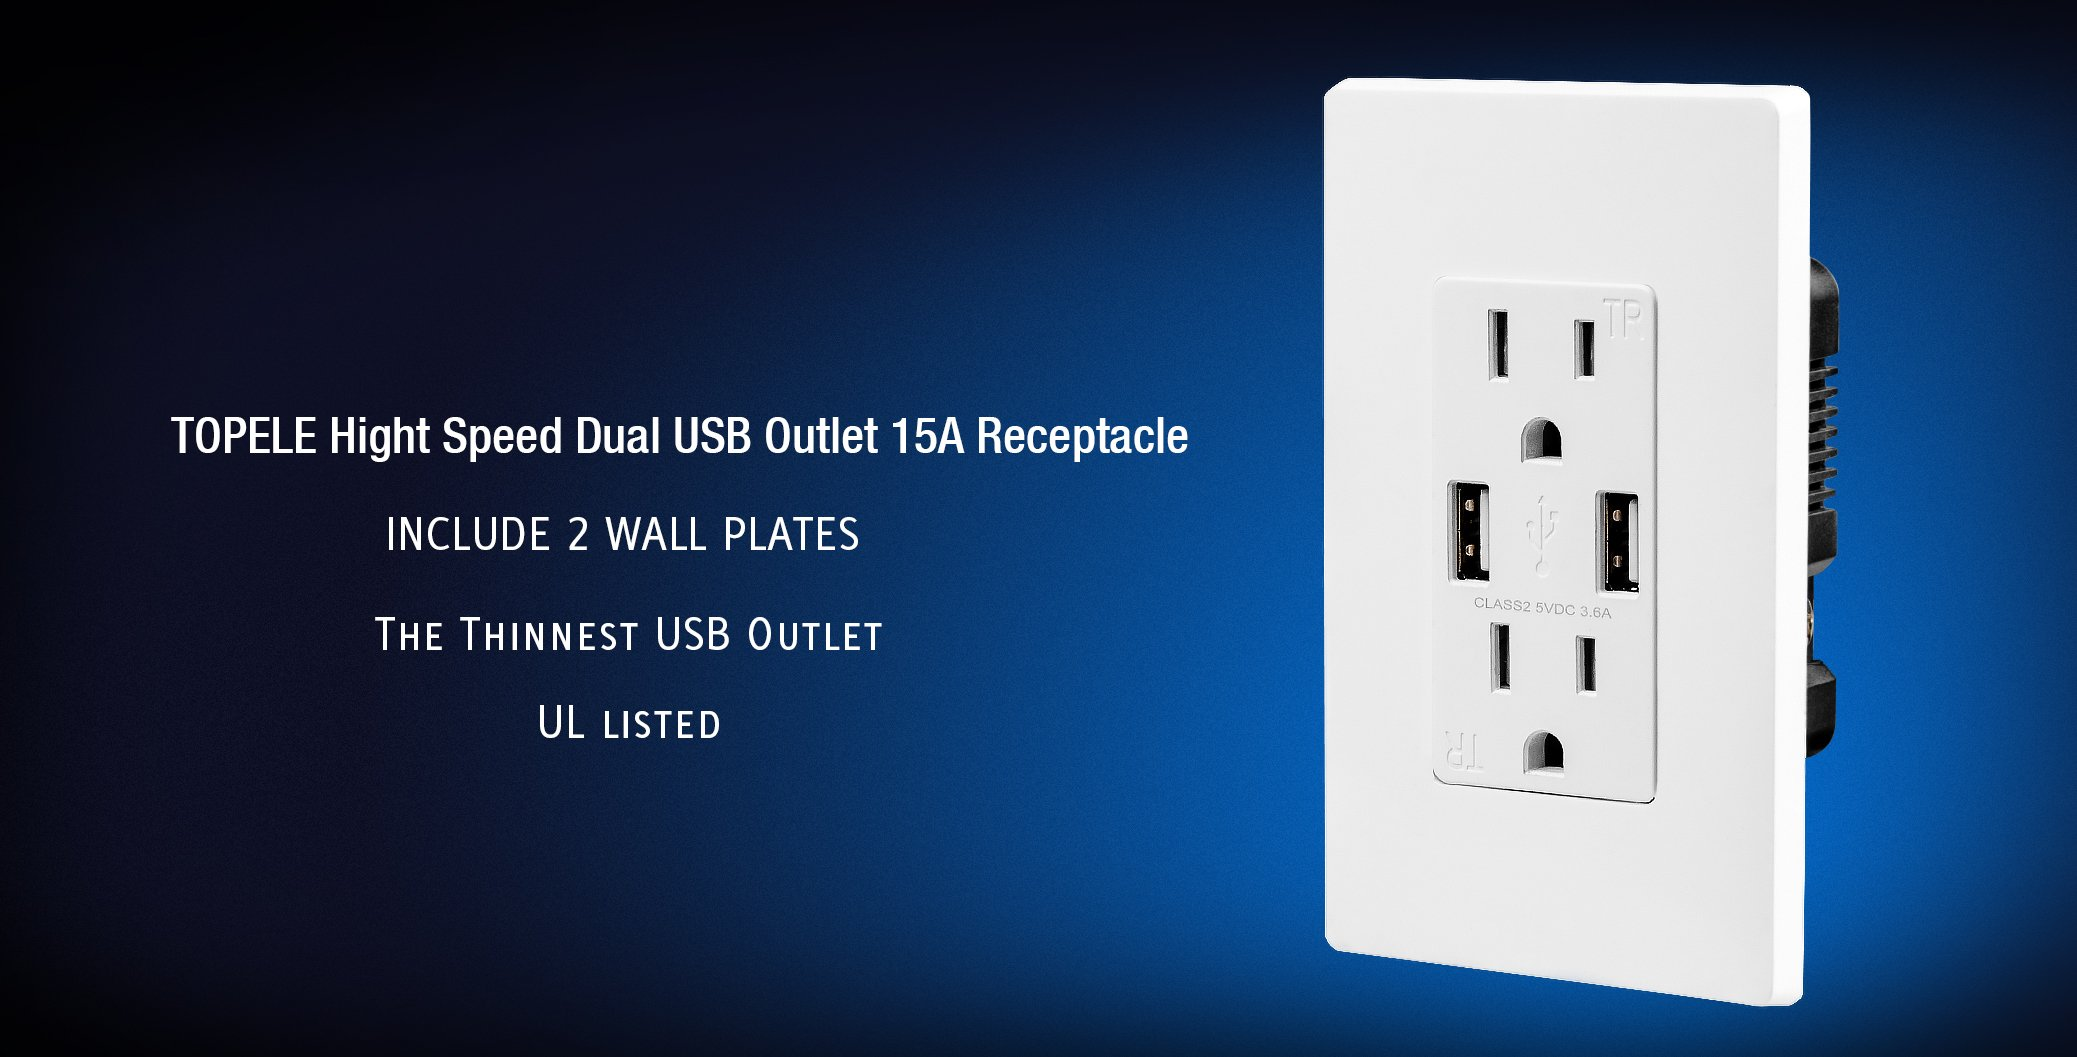 TOPELE Smart Fast Charger USB Outlet, Duplex Dual USB Wall Outlet with 15Amp 110V/120V Tamper-Resistant Electric Receptacle, Childproof USB Outlet Plug, UL Listed, White by TOPELE (Image #2)